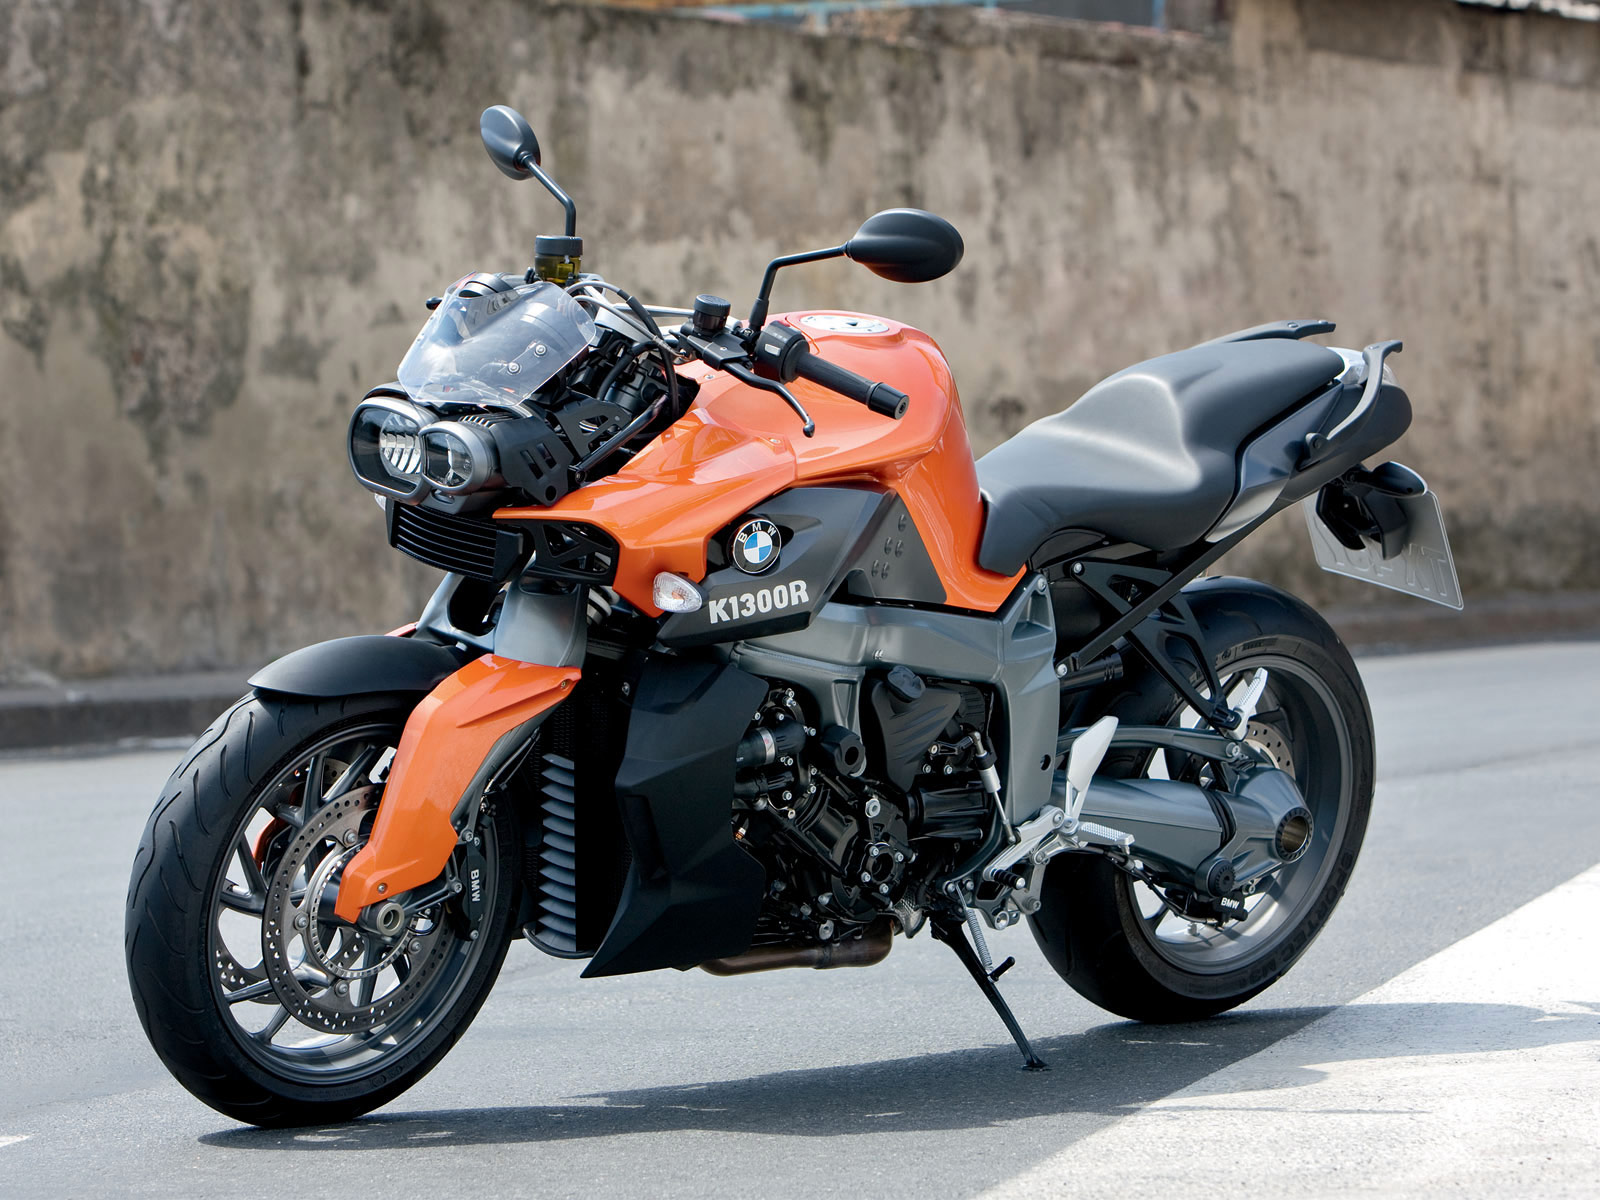 Bmw K1300r Hd Wallpapers High Definition Free Background